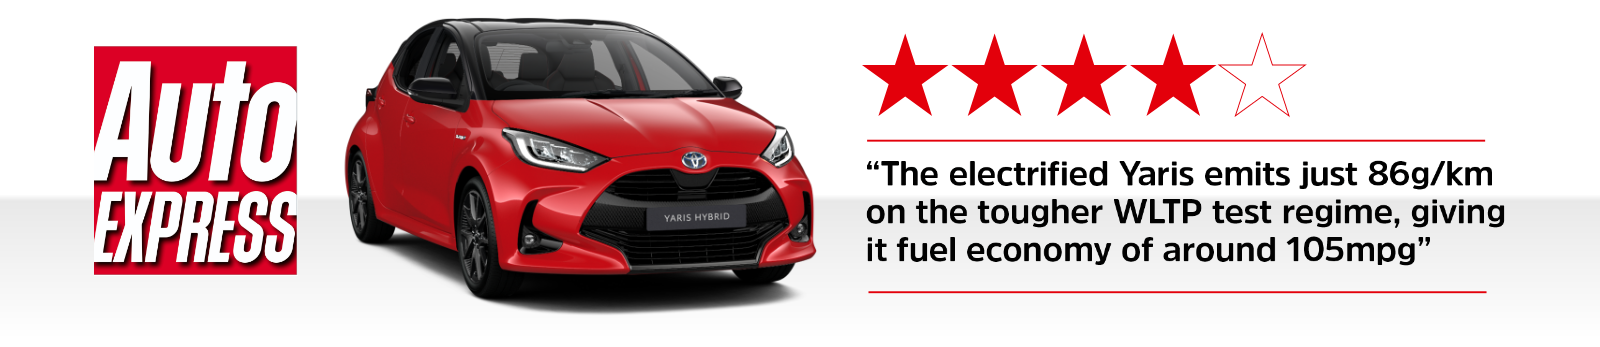 Auto Express - 4 out of 5 stars - The electrified Yaris emits just 86g/km on the tougher WLTP test regime, giving it fuel economy of around 105mpg